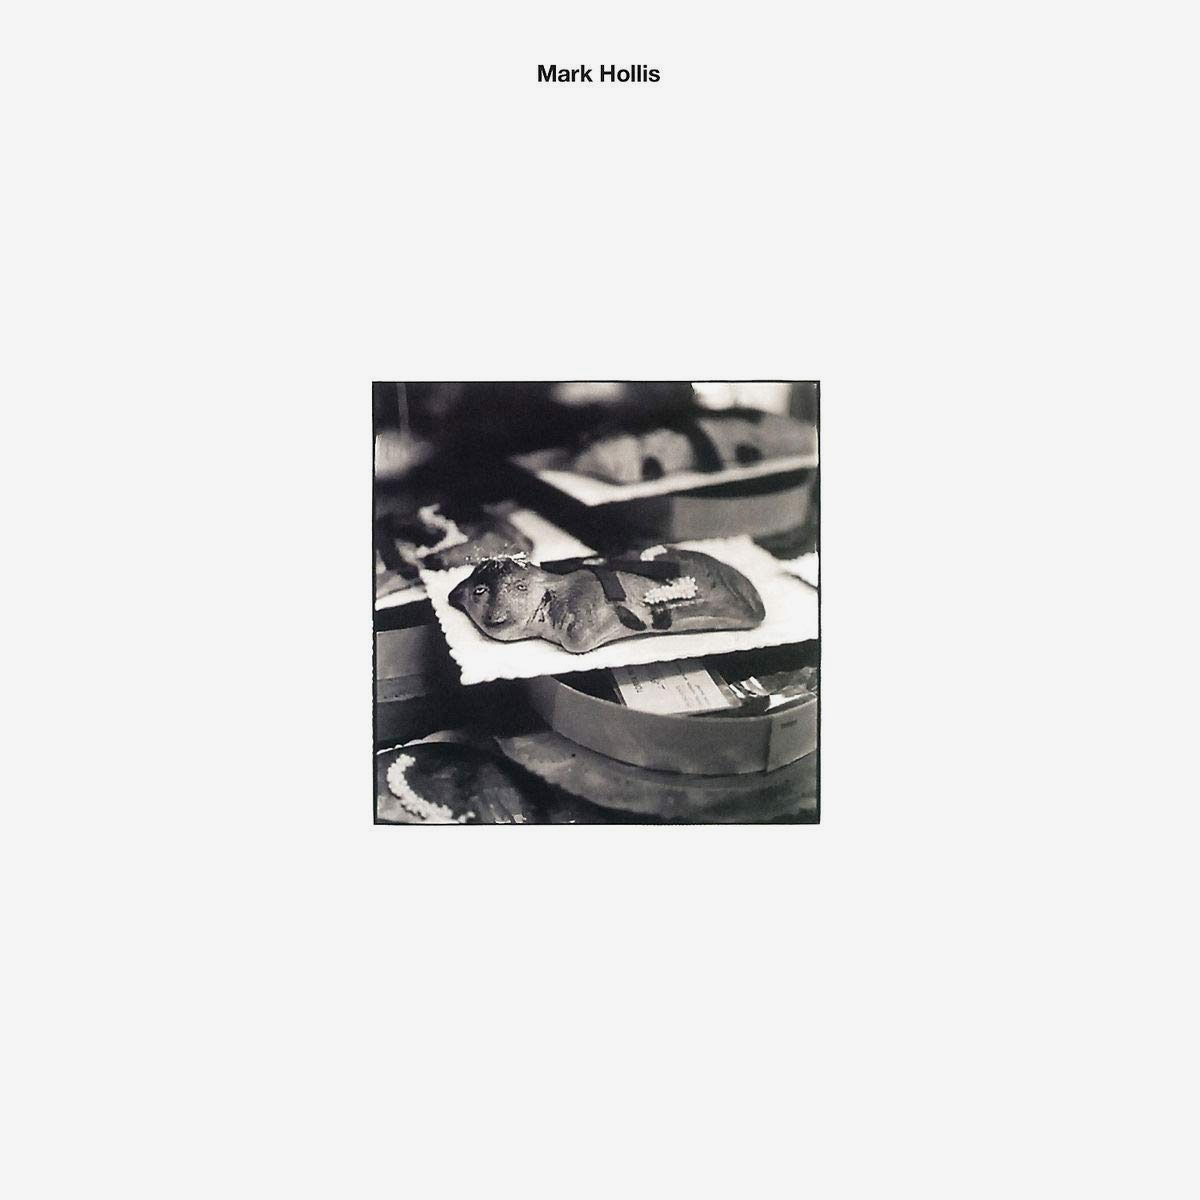 MARK HOLLIS (LP)